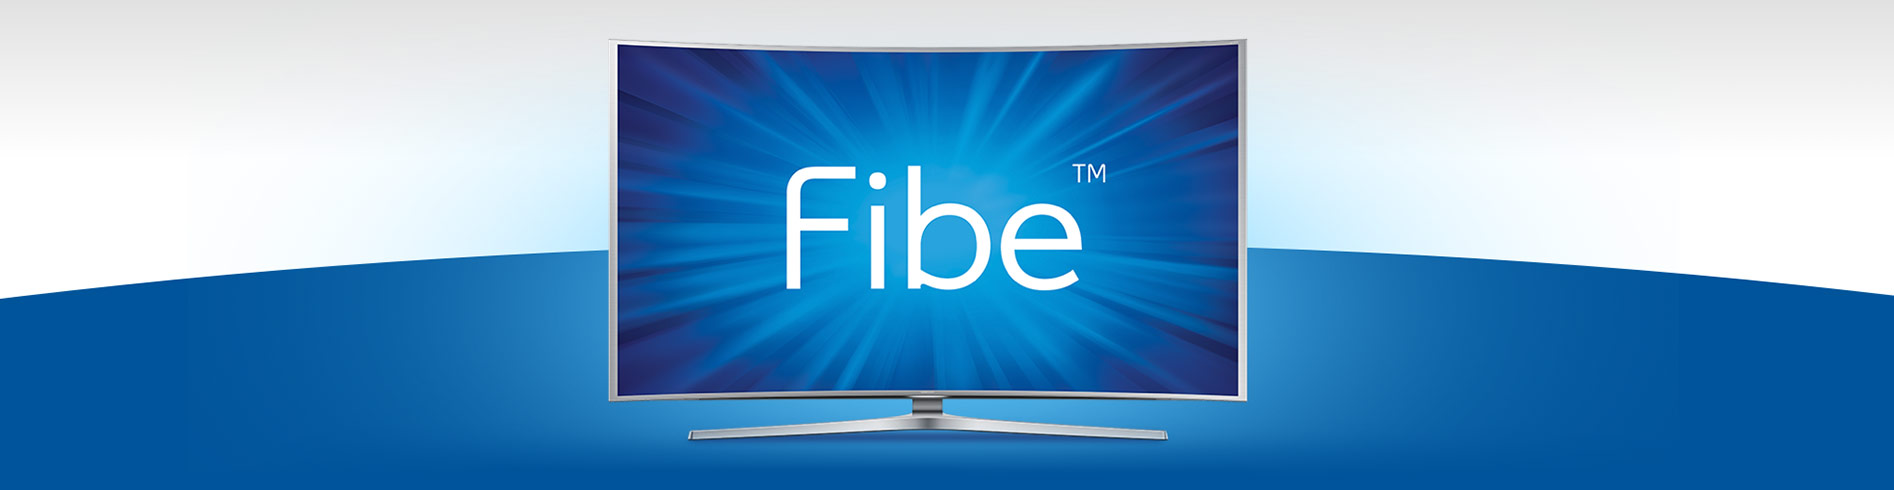 hight resolution of fibe tv is the best tv service